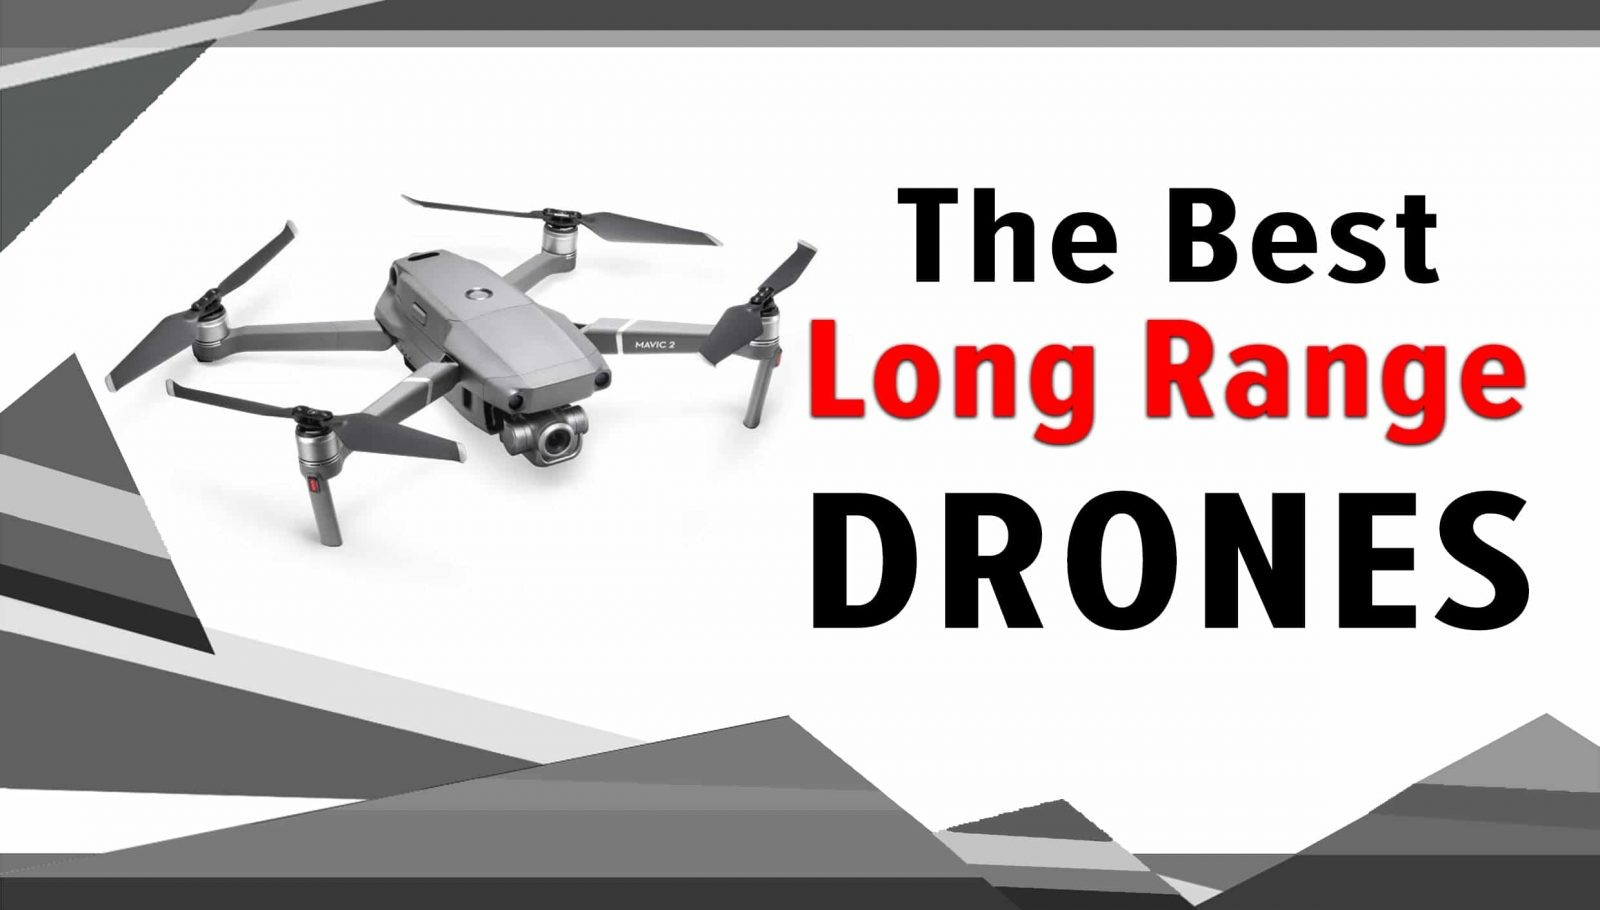 the best long range drones